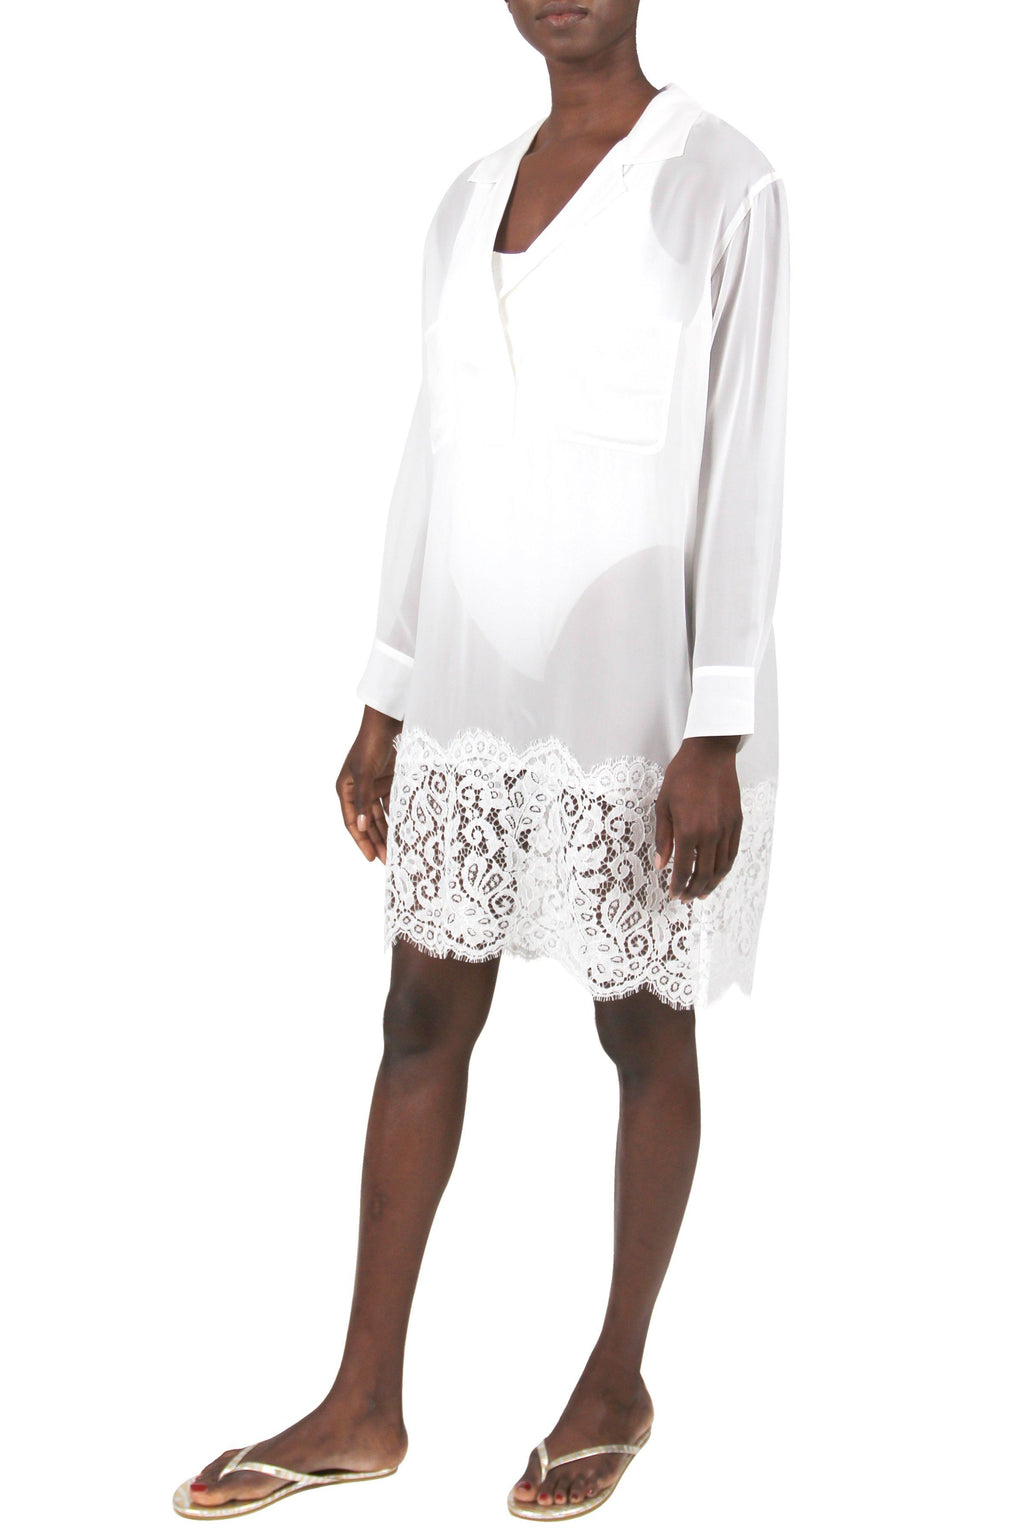 French Lace Oversized Shirt Tops Marie France Van Damme 0/1 Pure White